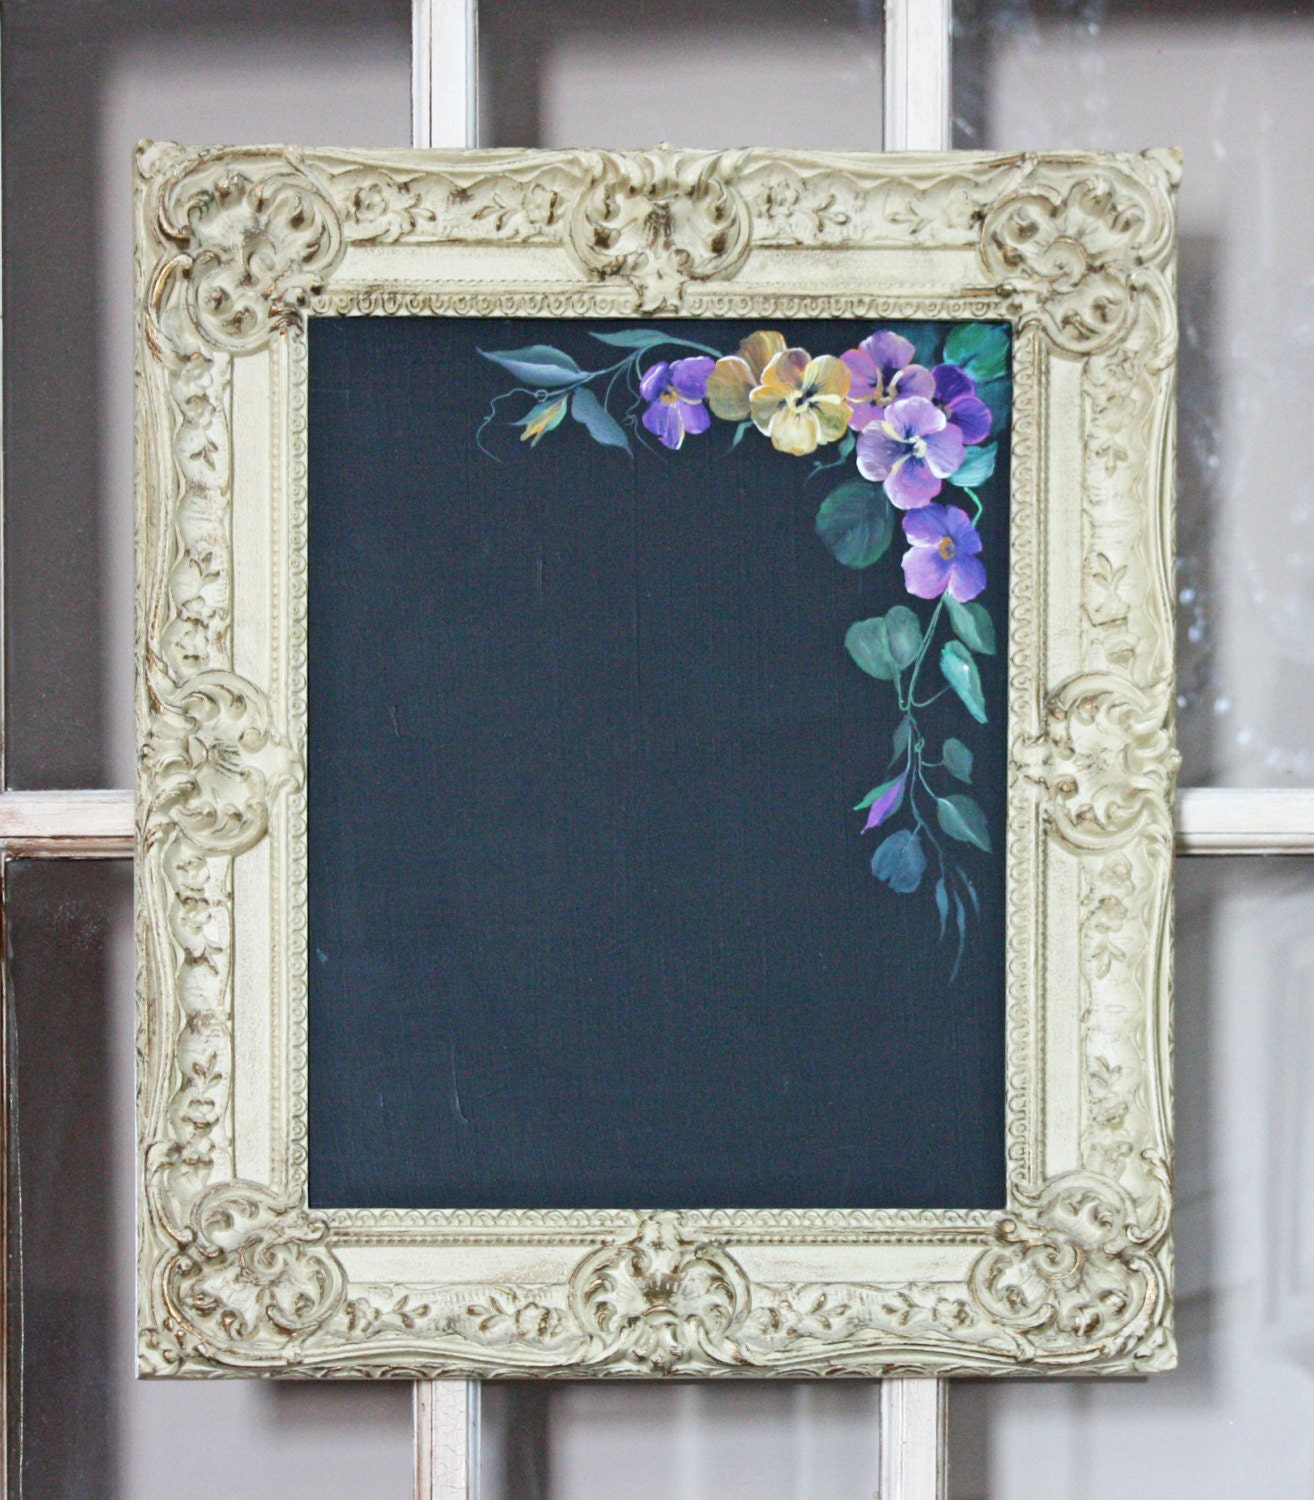 CHALKBOARDS BLACKBOARDS Large Framed MIRRORS by RevivedVintage